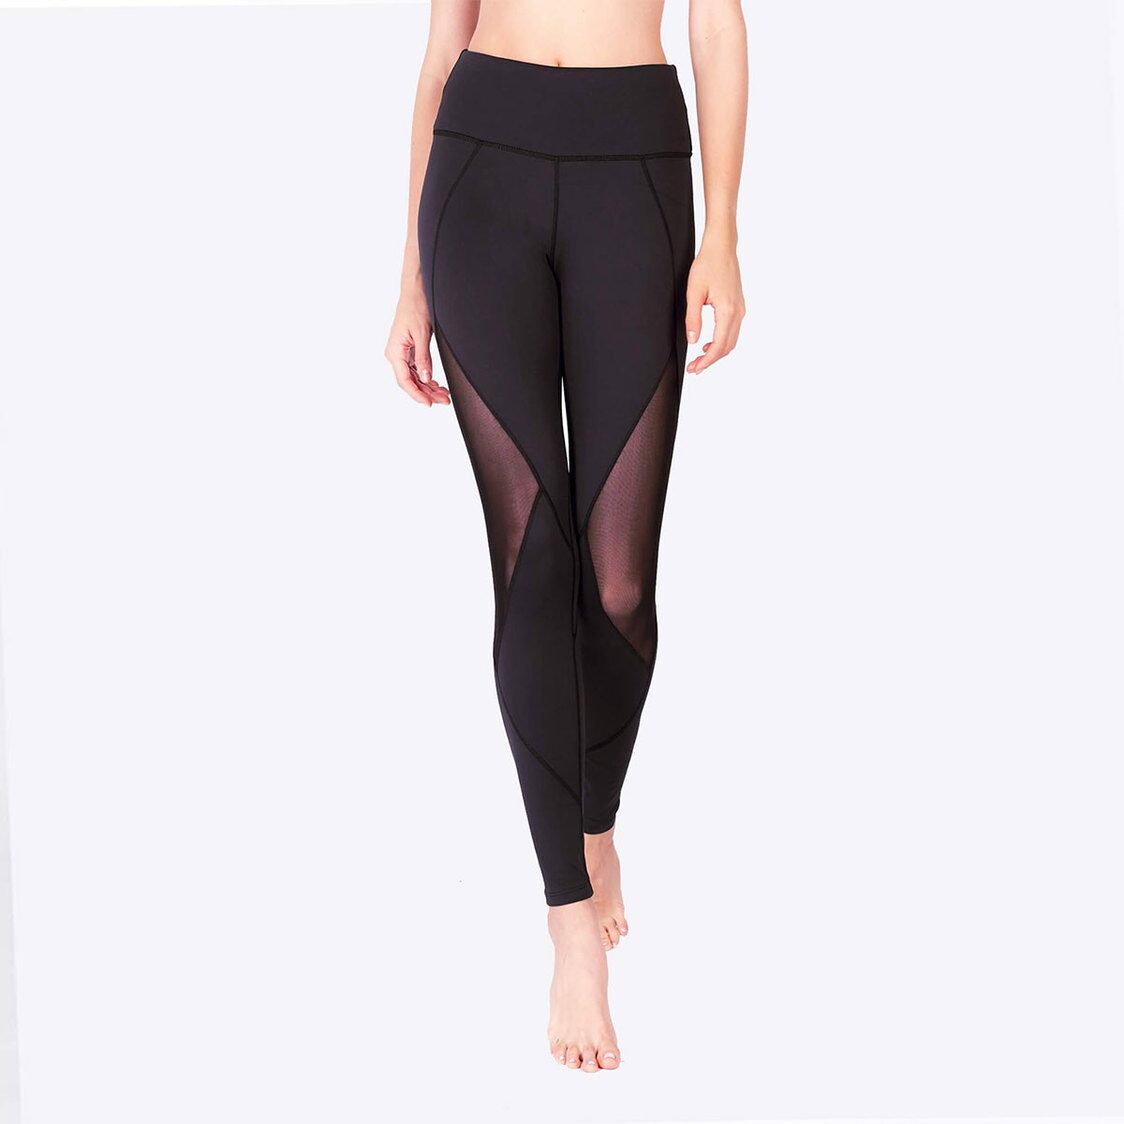 LIMITLESS Diamond Mesh Leggings with Keeperband in Black